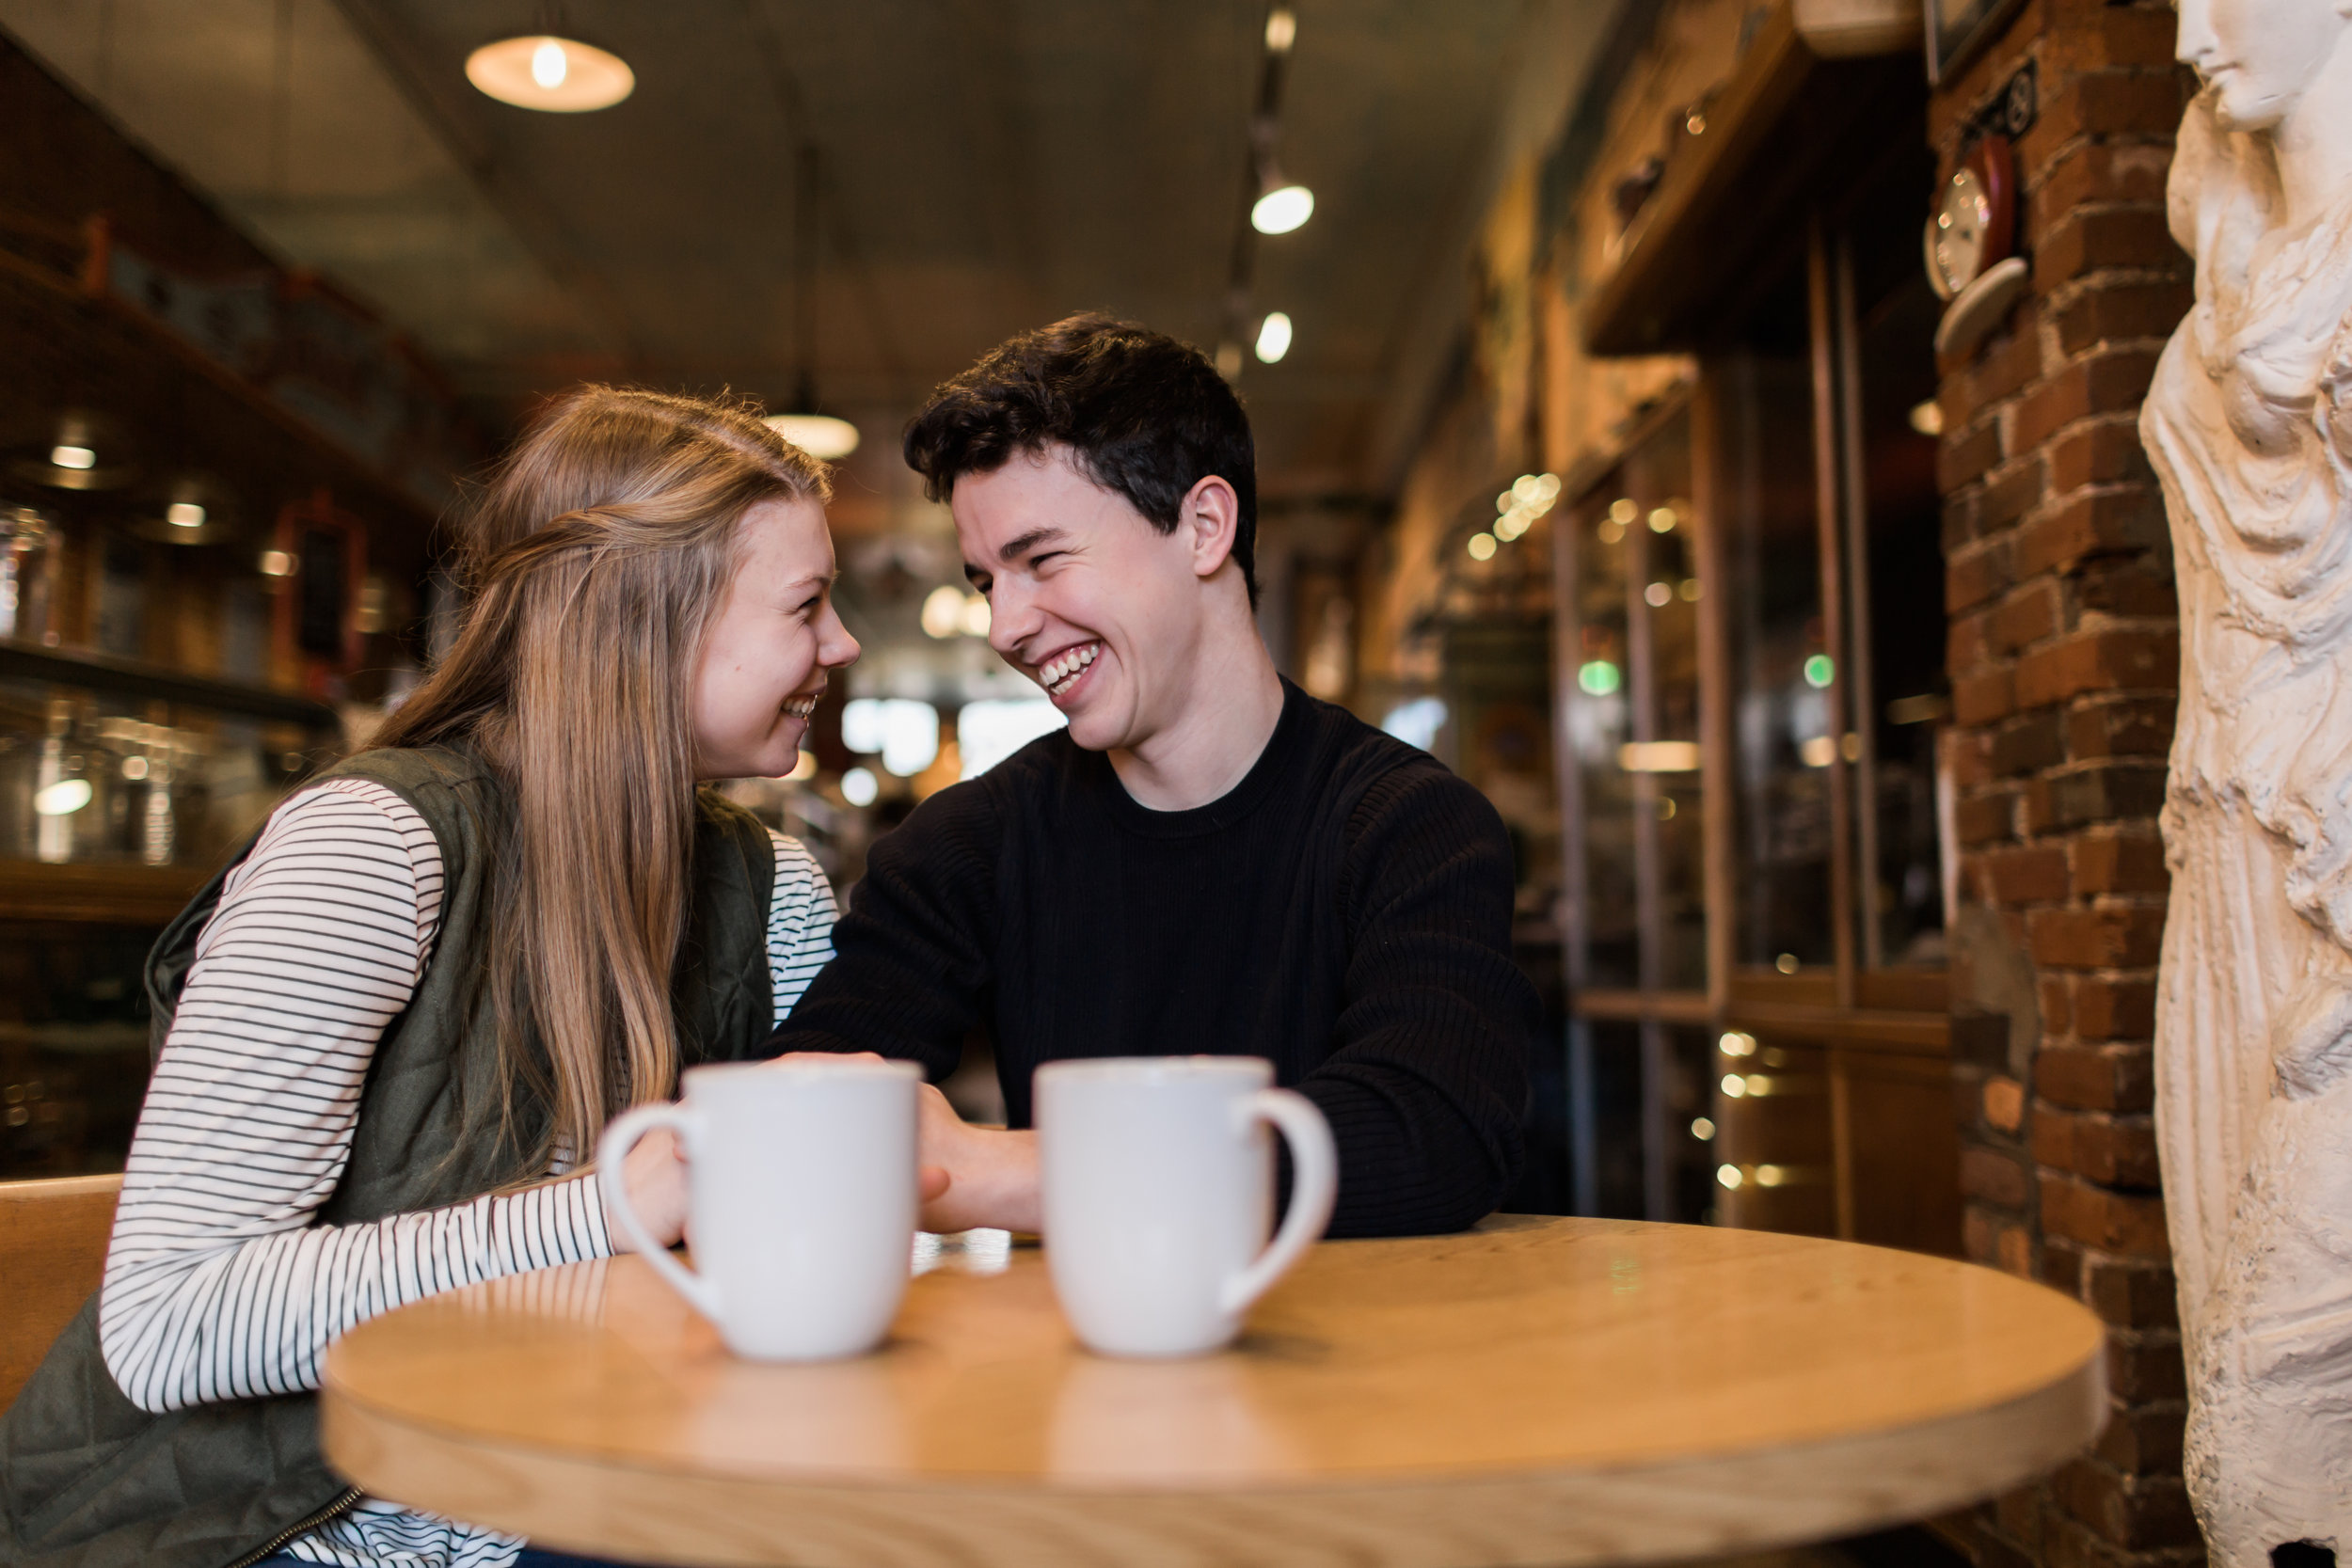 Des-Moines-coffee-shop-engagement-session-6.jpg